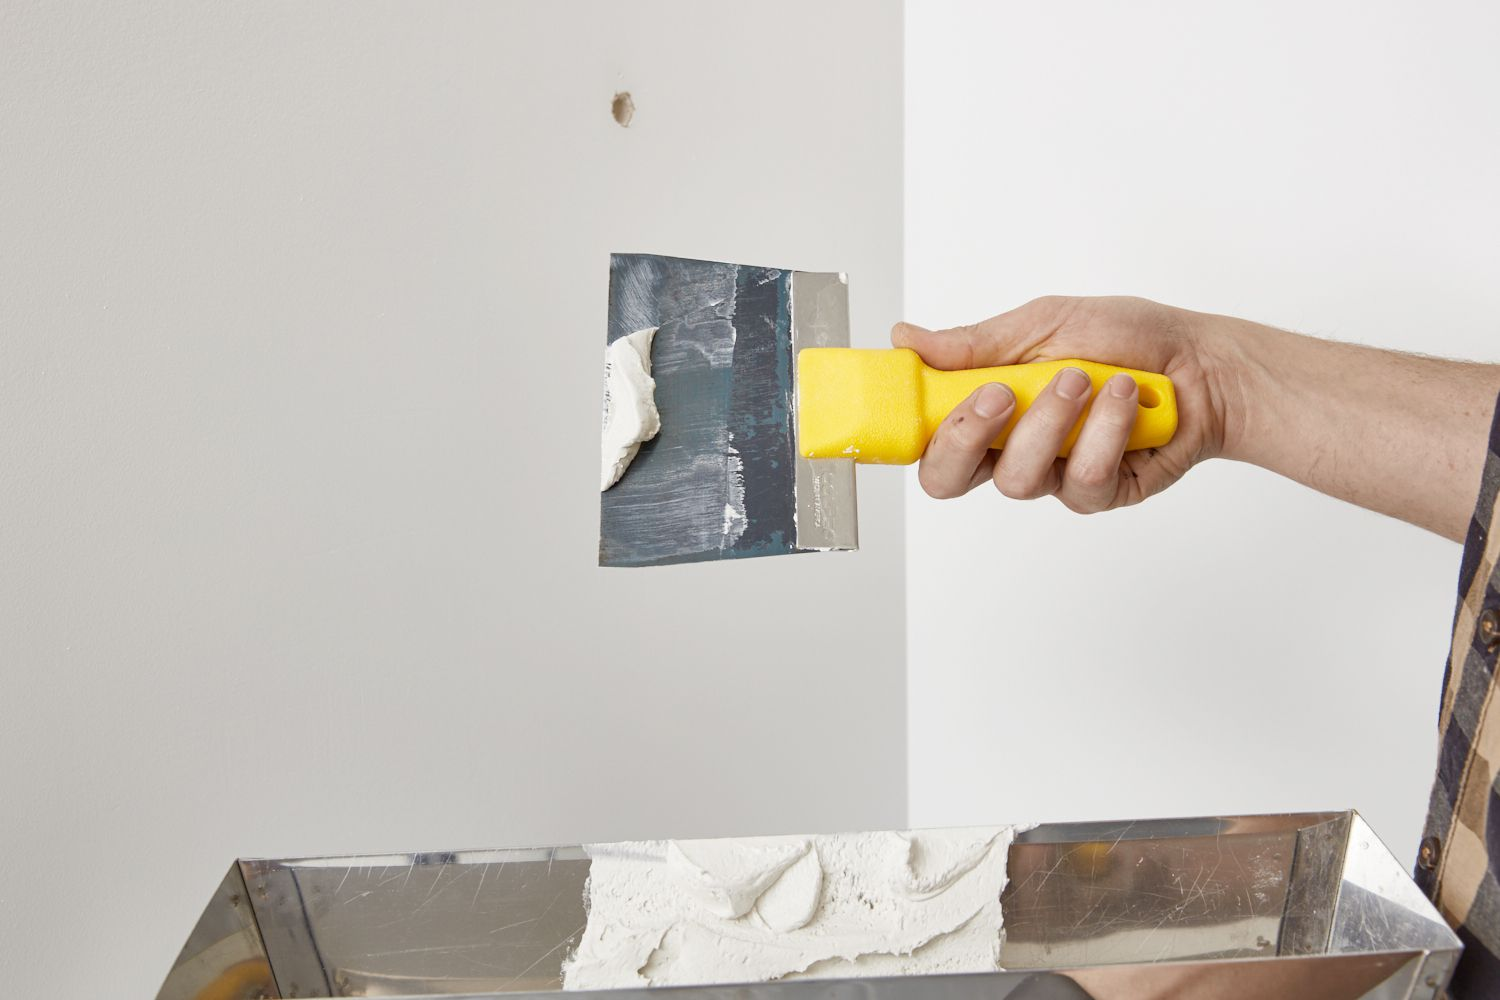 loading up the drywall knife